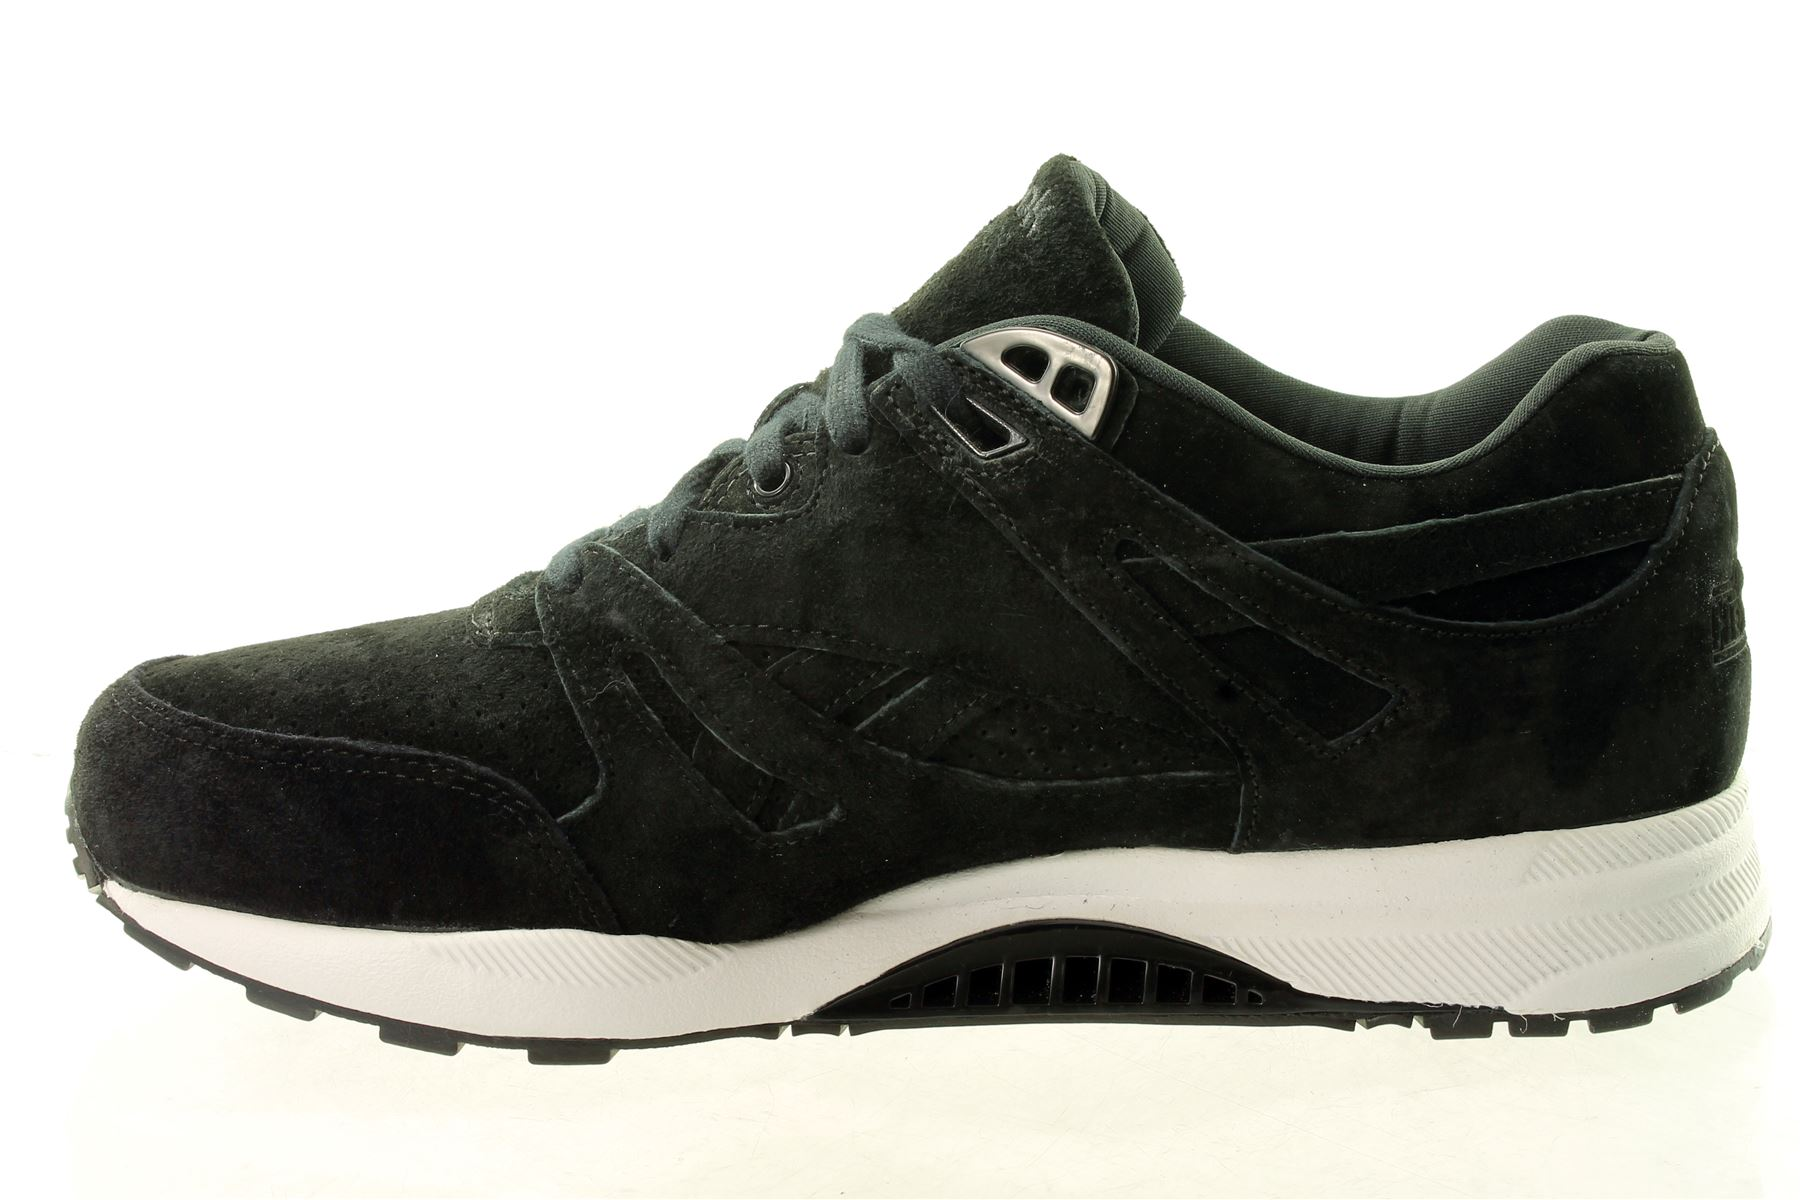 6e77a2f1c4c85 reebok ventilator men cheap   OFF44% The Largest Catalog Discounts